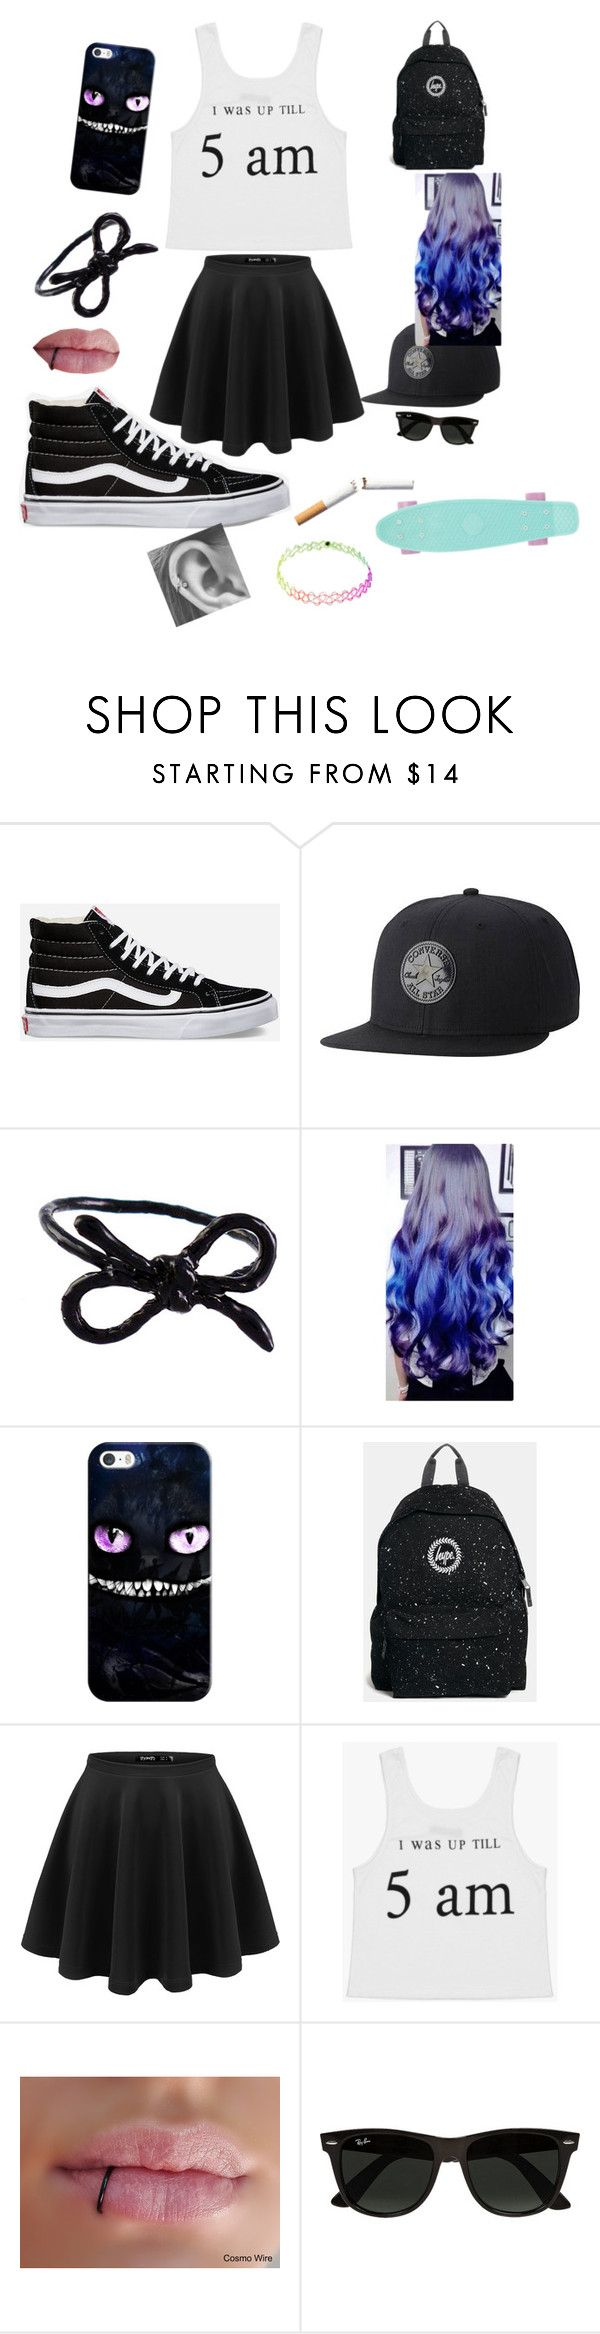 """another boredom set"" by bailey-peay-0517-bp ❤ liked on Polyvore featuring Vans, Converse, Areaware, Casetify, Hype and Ray-Ban"